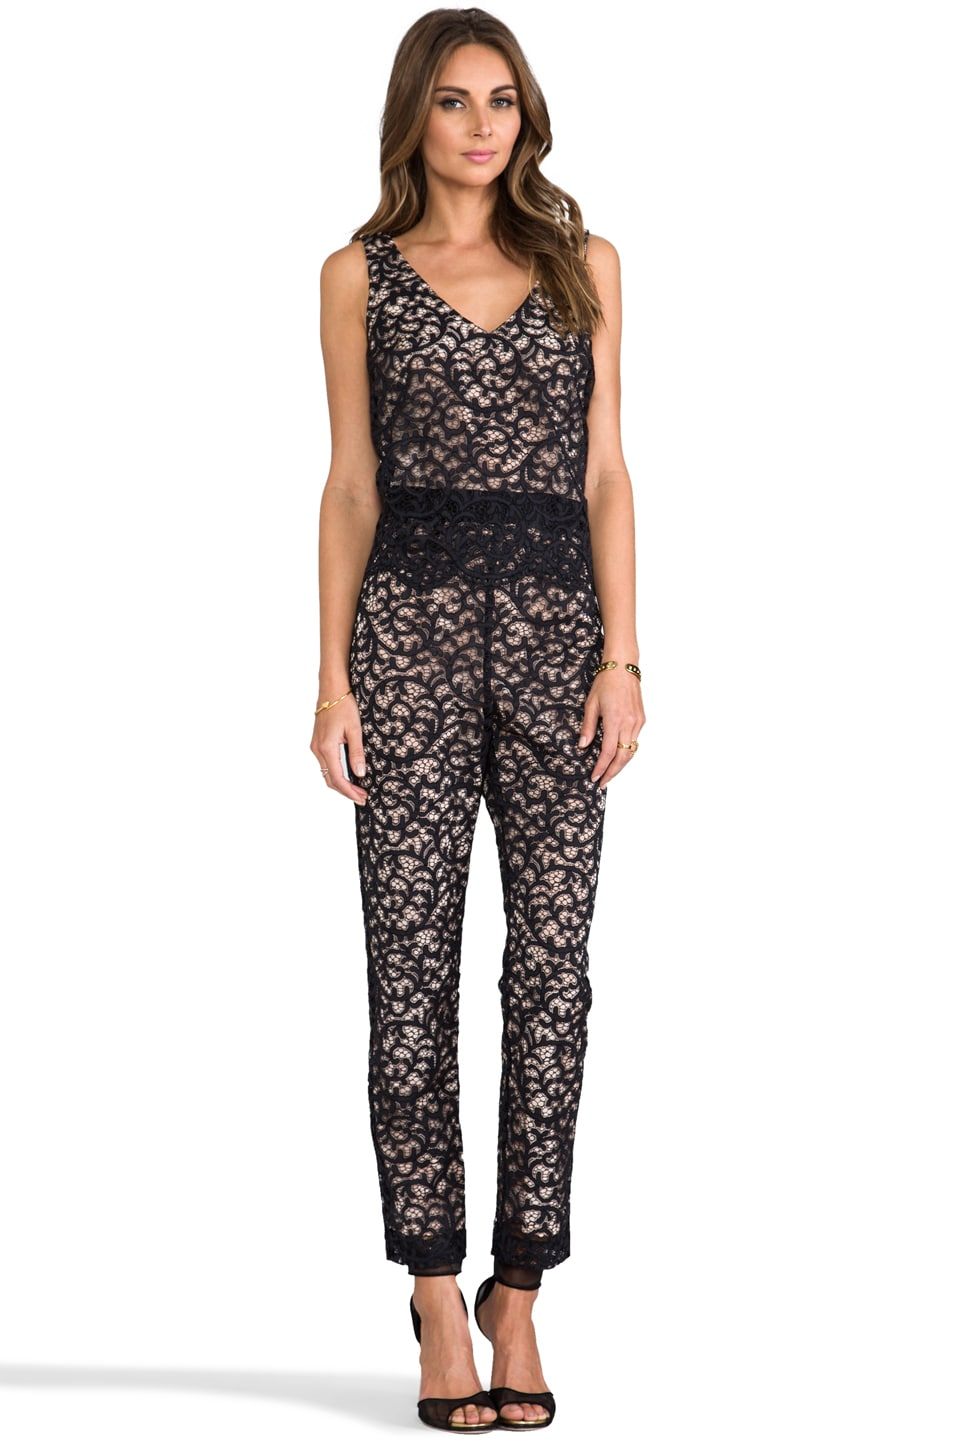 Trina Turk Zia Lace Jumpsuit in Black/Nude